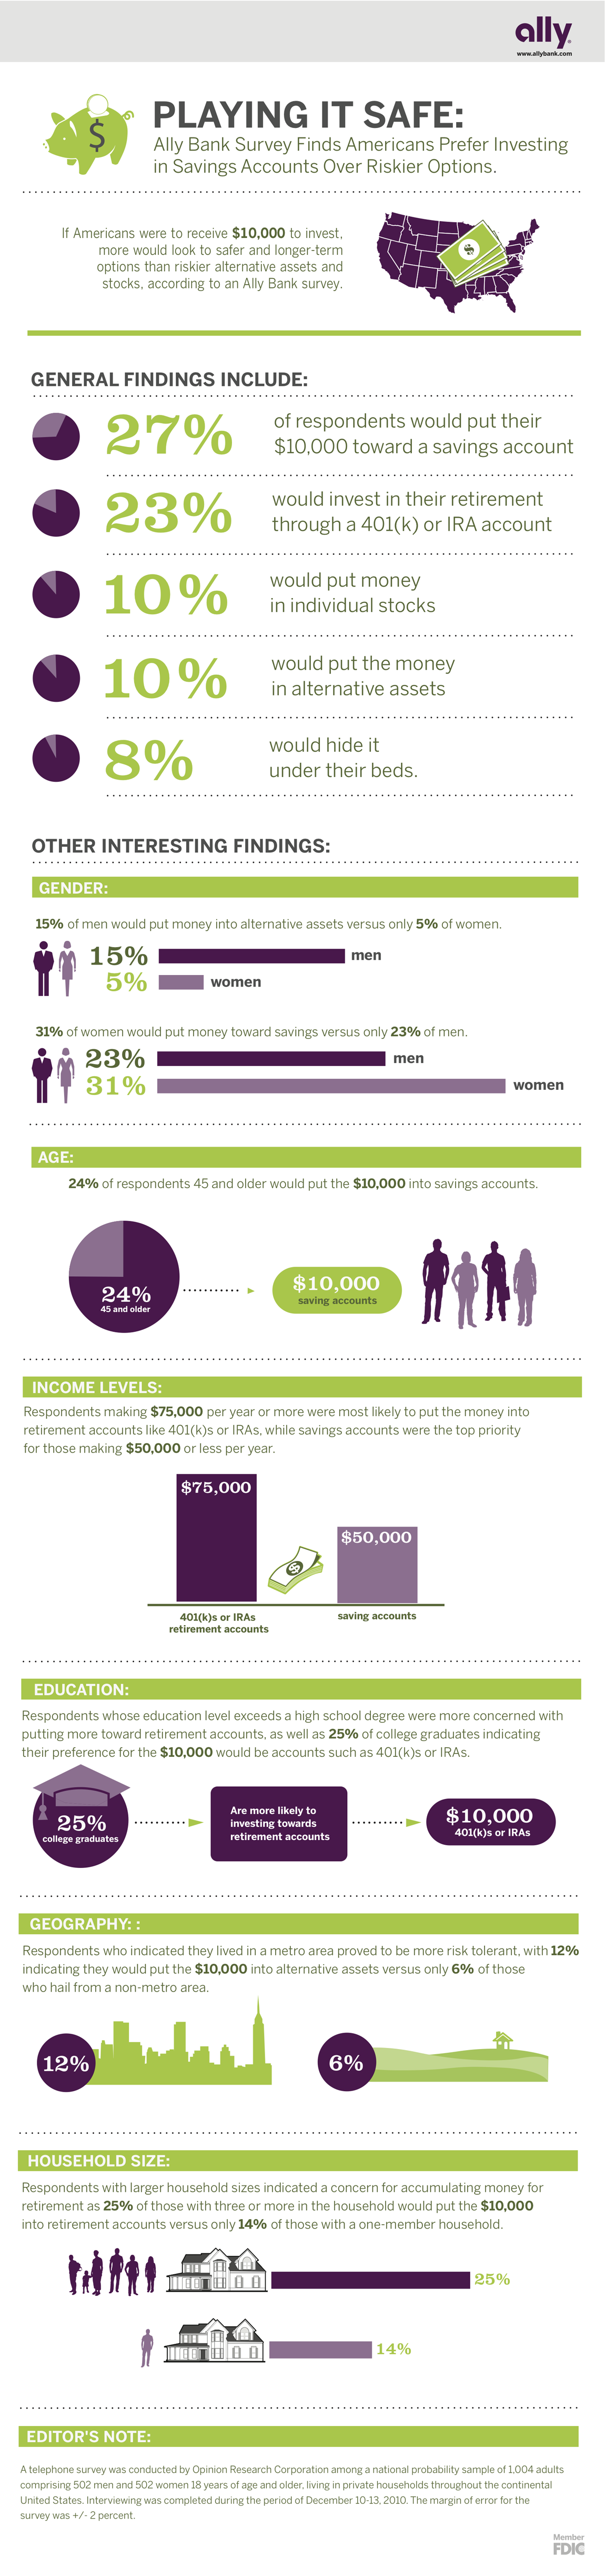 2011-3-17_ally_bank_investment_infographic